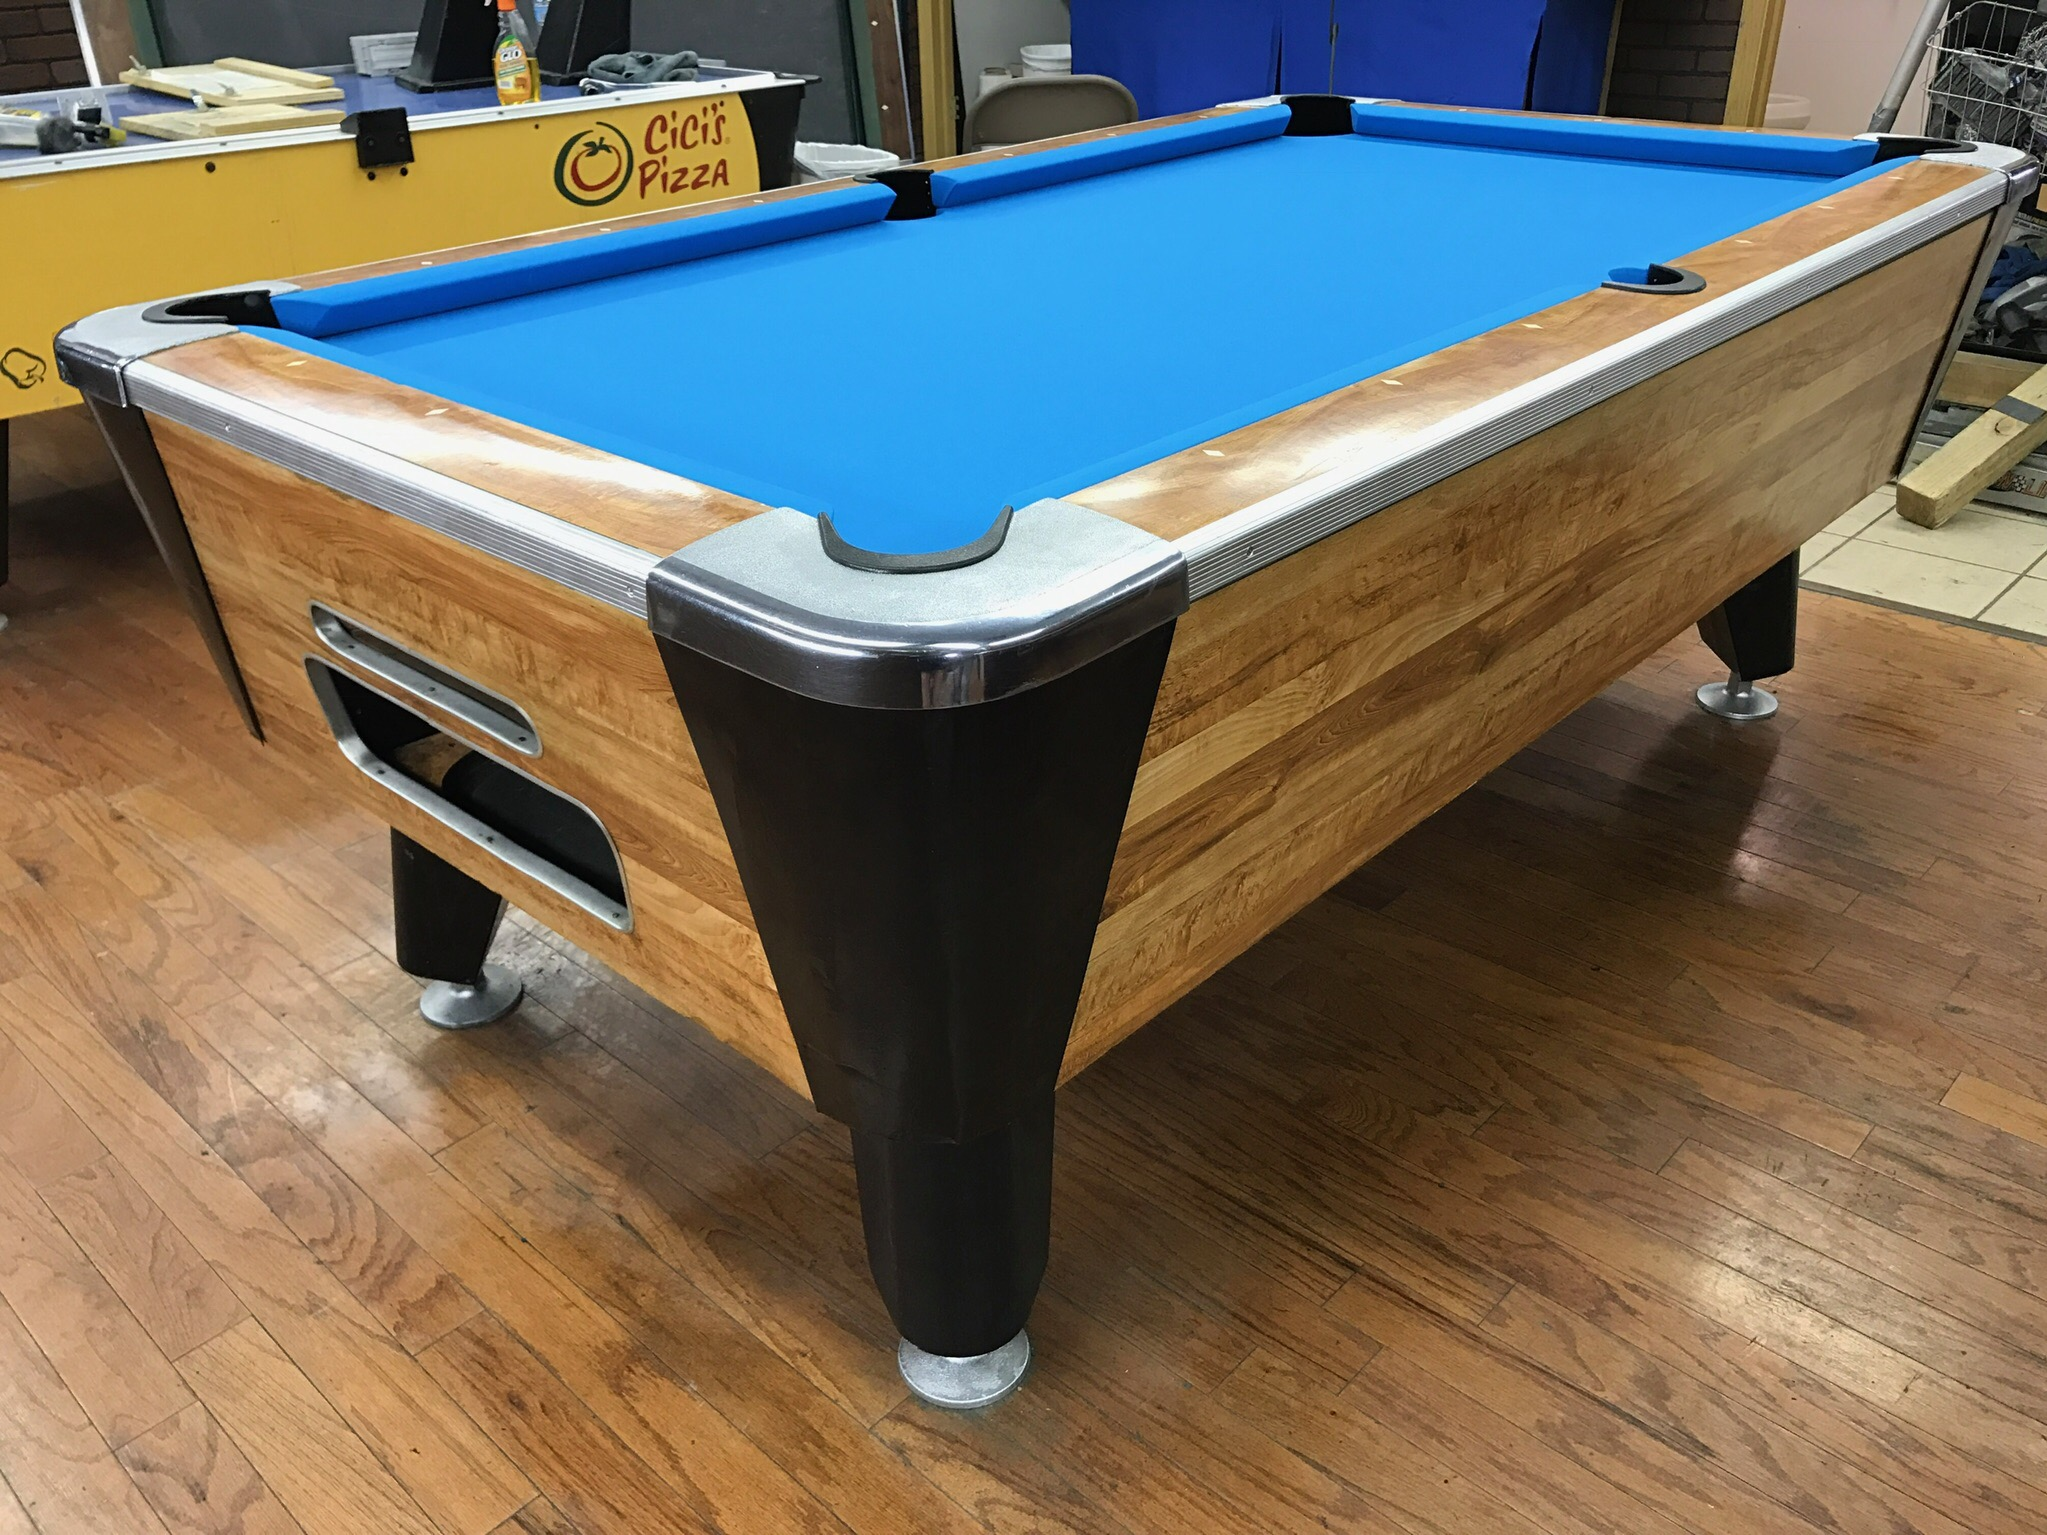 Table Valley Used Coin Operated Pool Table Used Coin - Valley coin operated pool table